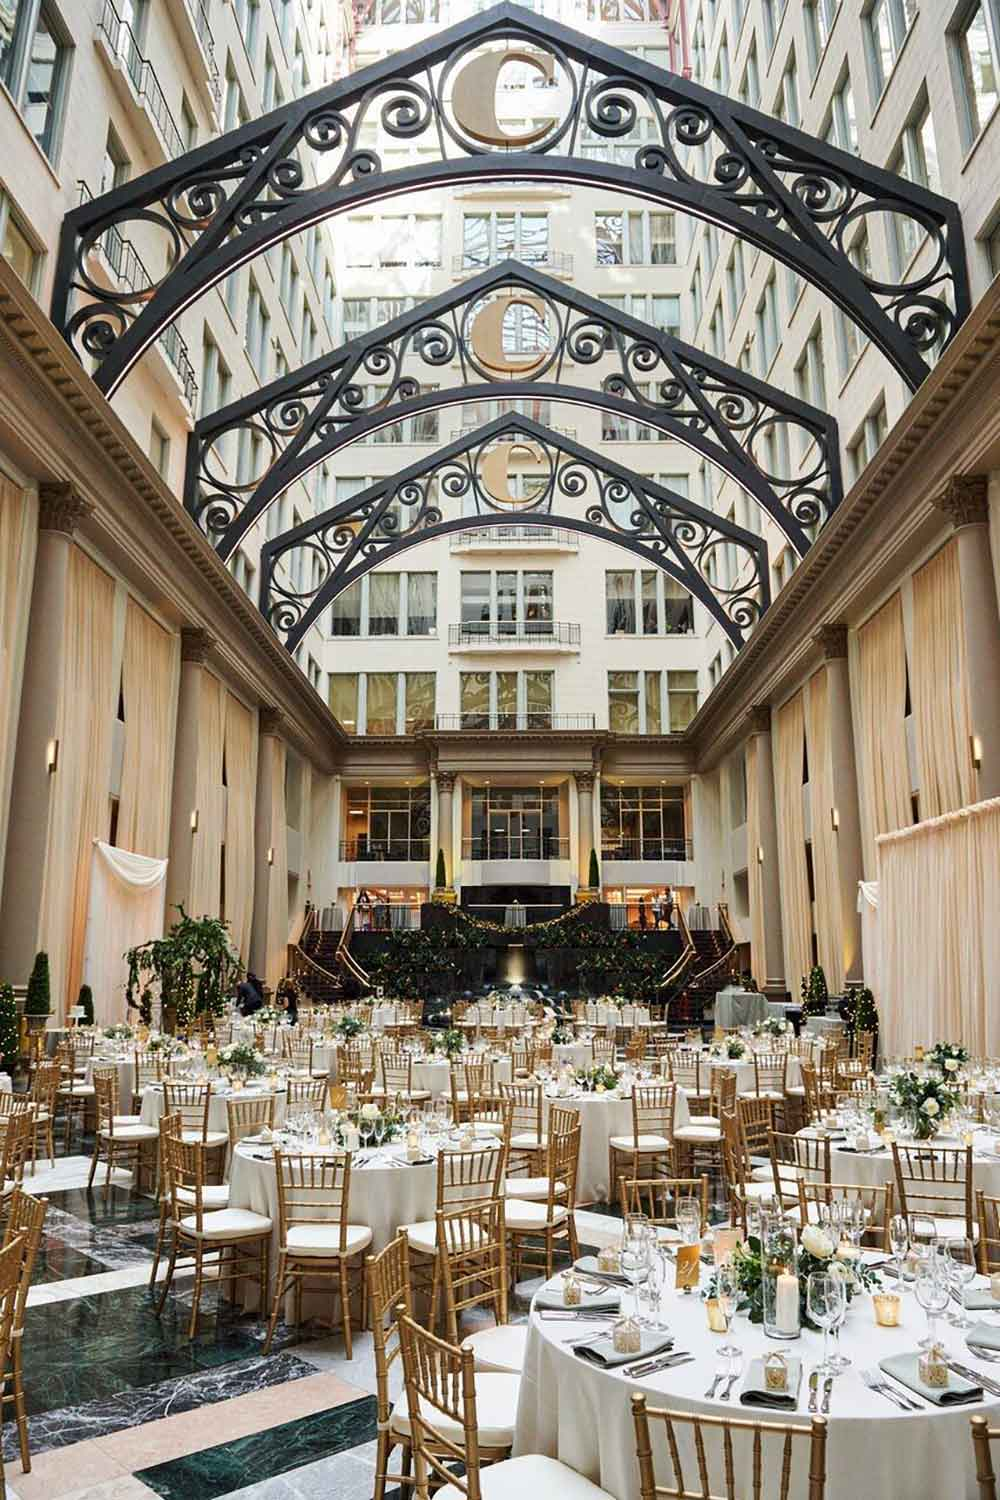 Curtis Atrium ballroom decorated for a wedding, located in Philadelphia